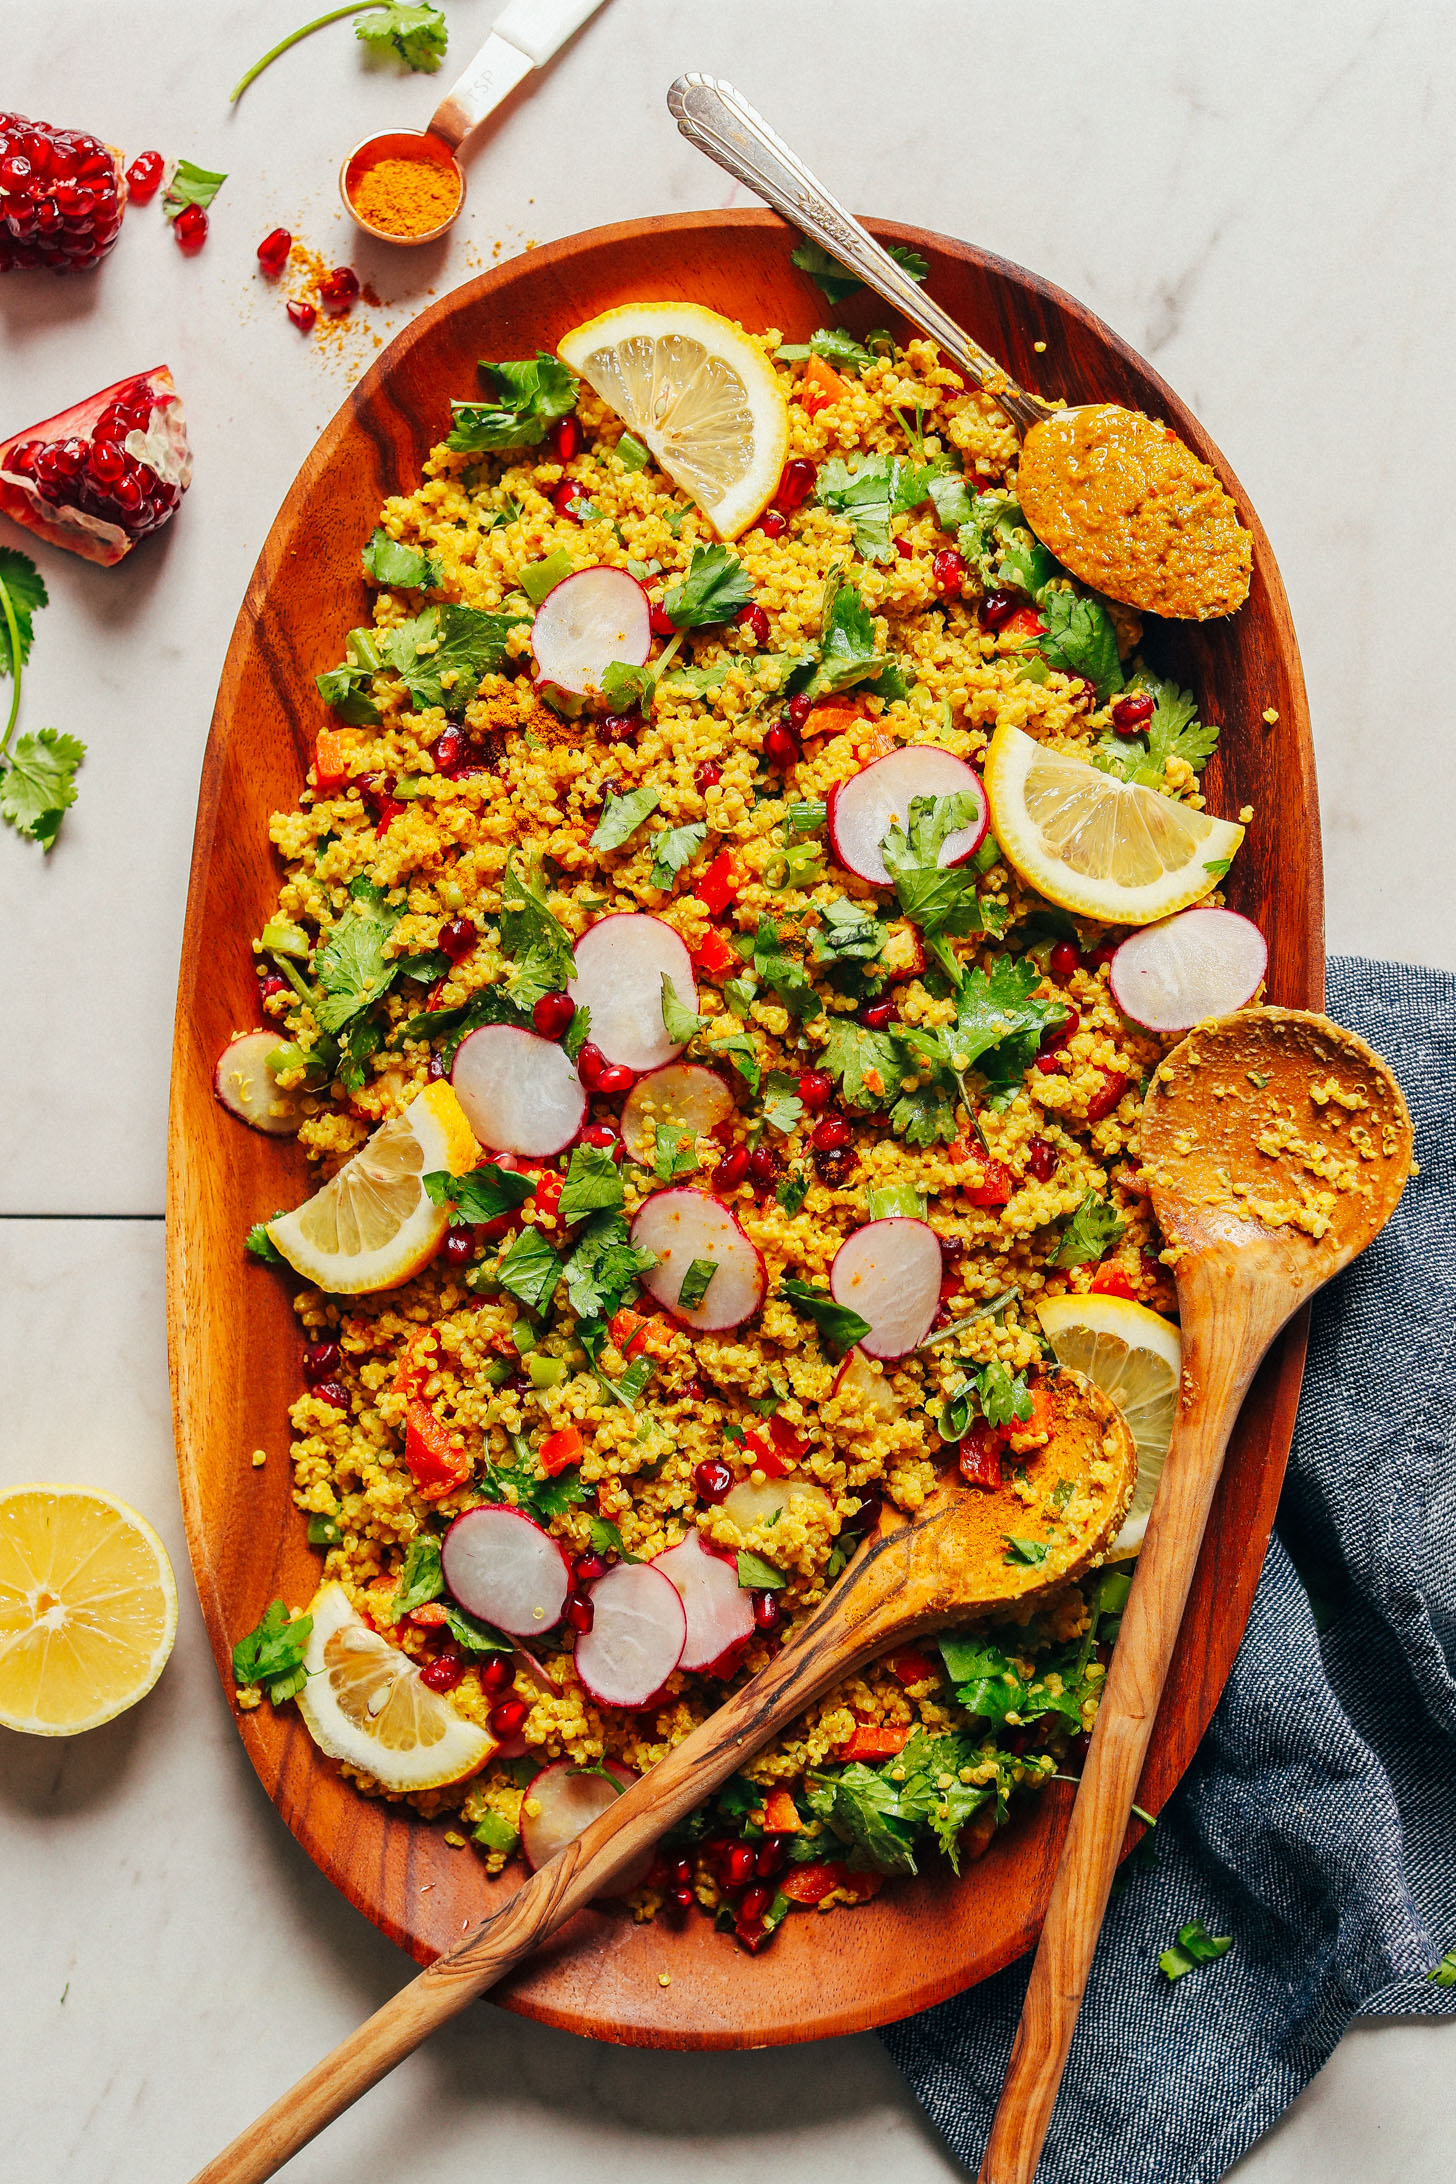 Large wood platter with Curried Quinoa Salad served with fresh vegetables and lemon slices